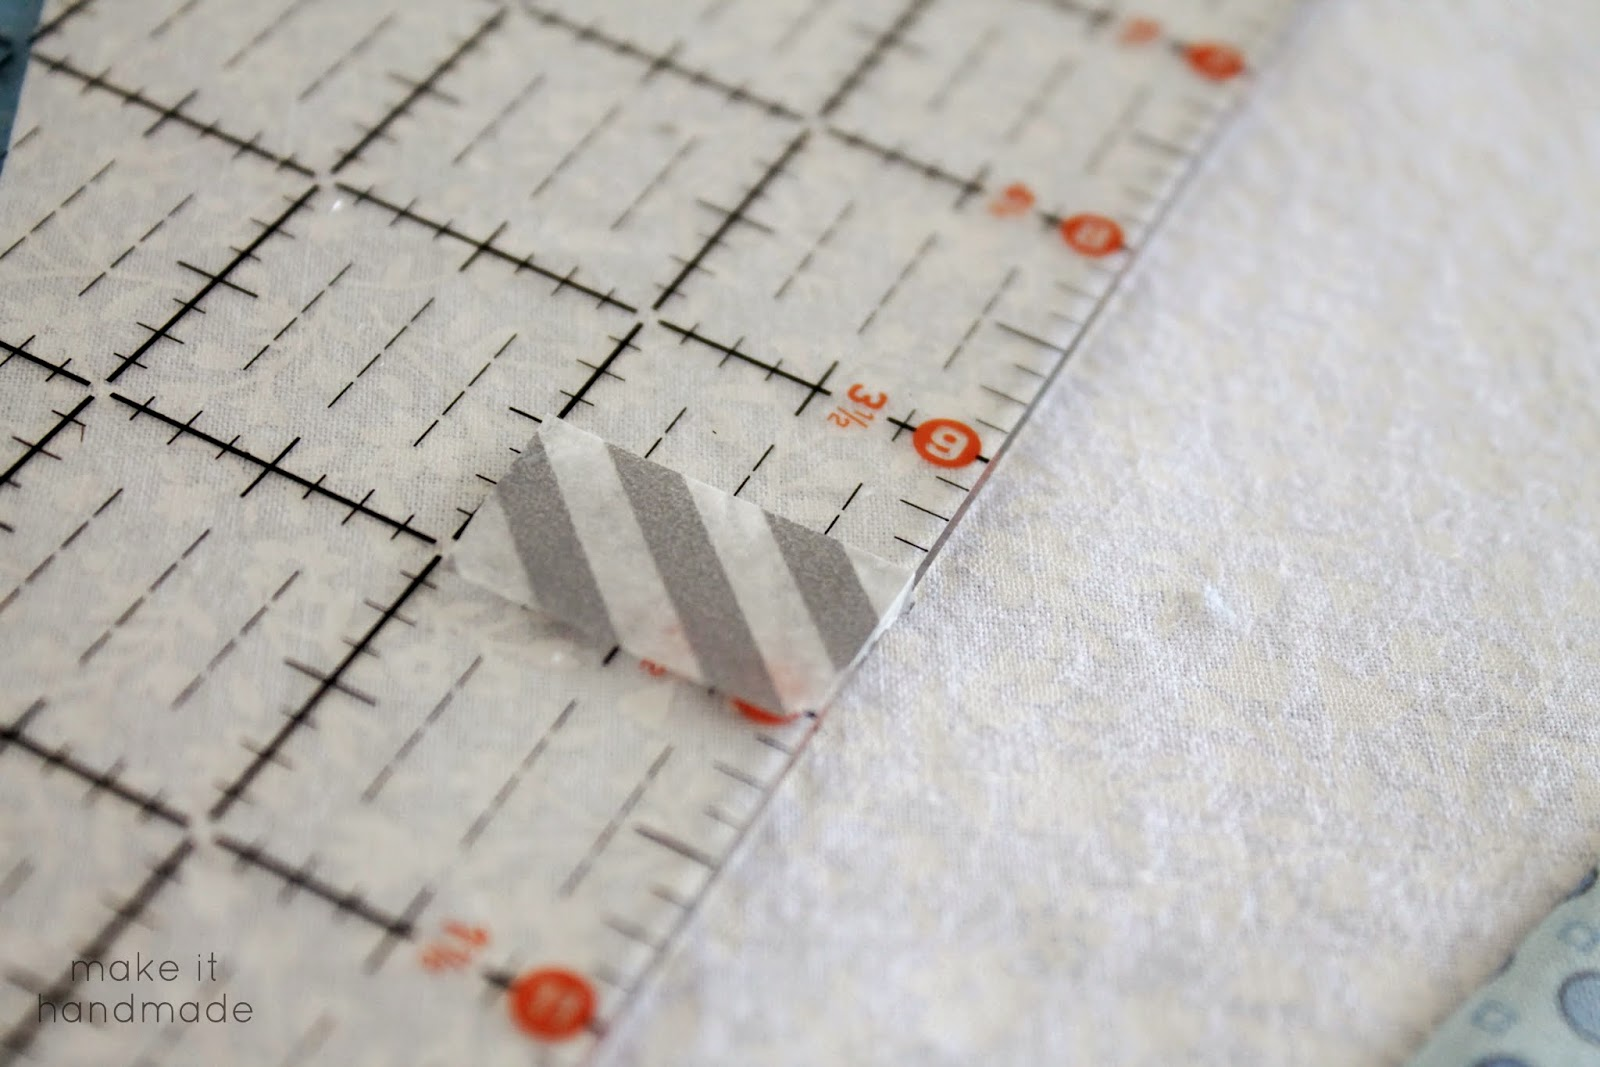 Make It Handmade Square A Quilt Block Without A